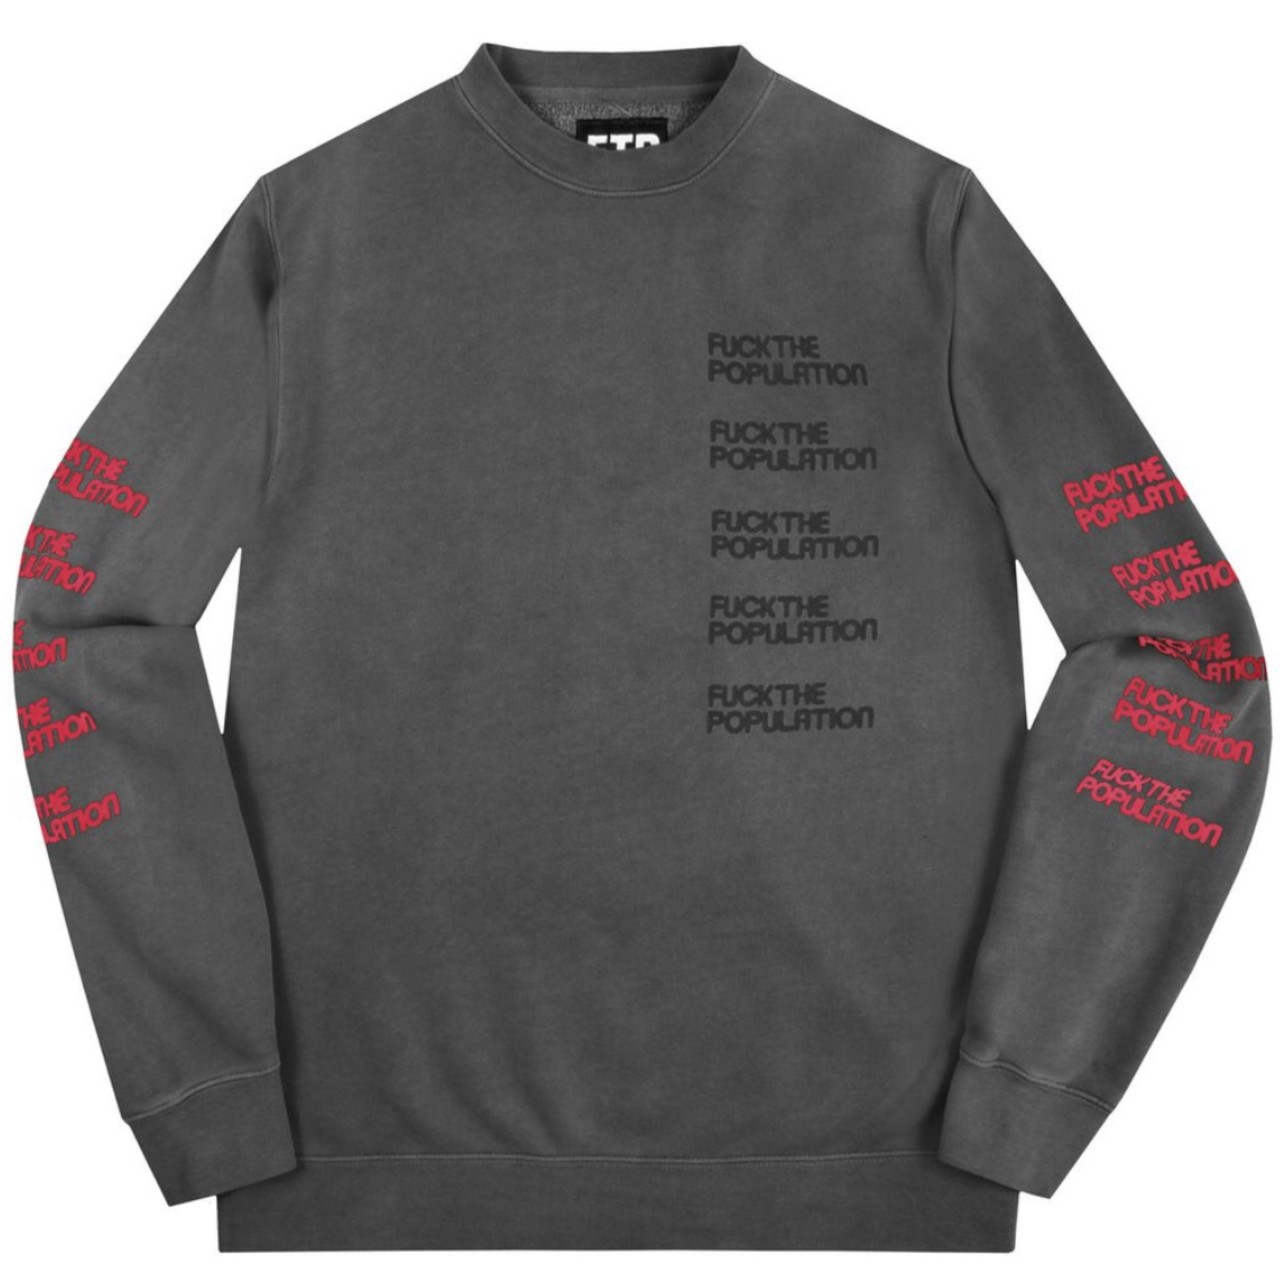 Ftp clothing for men for sale